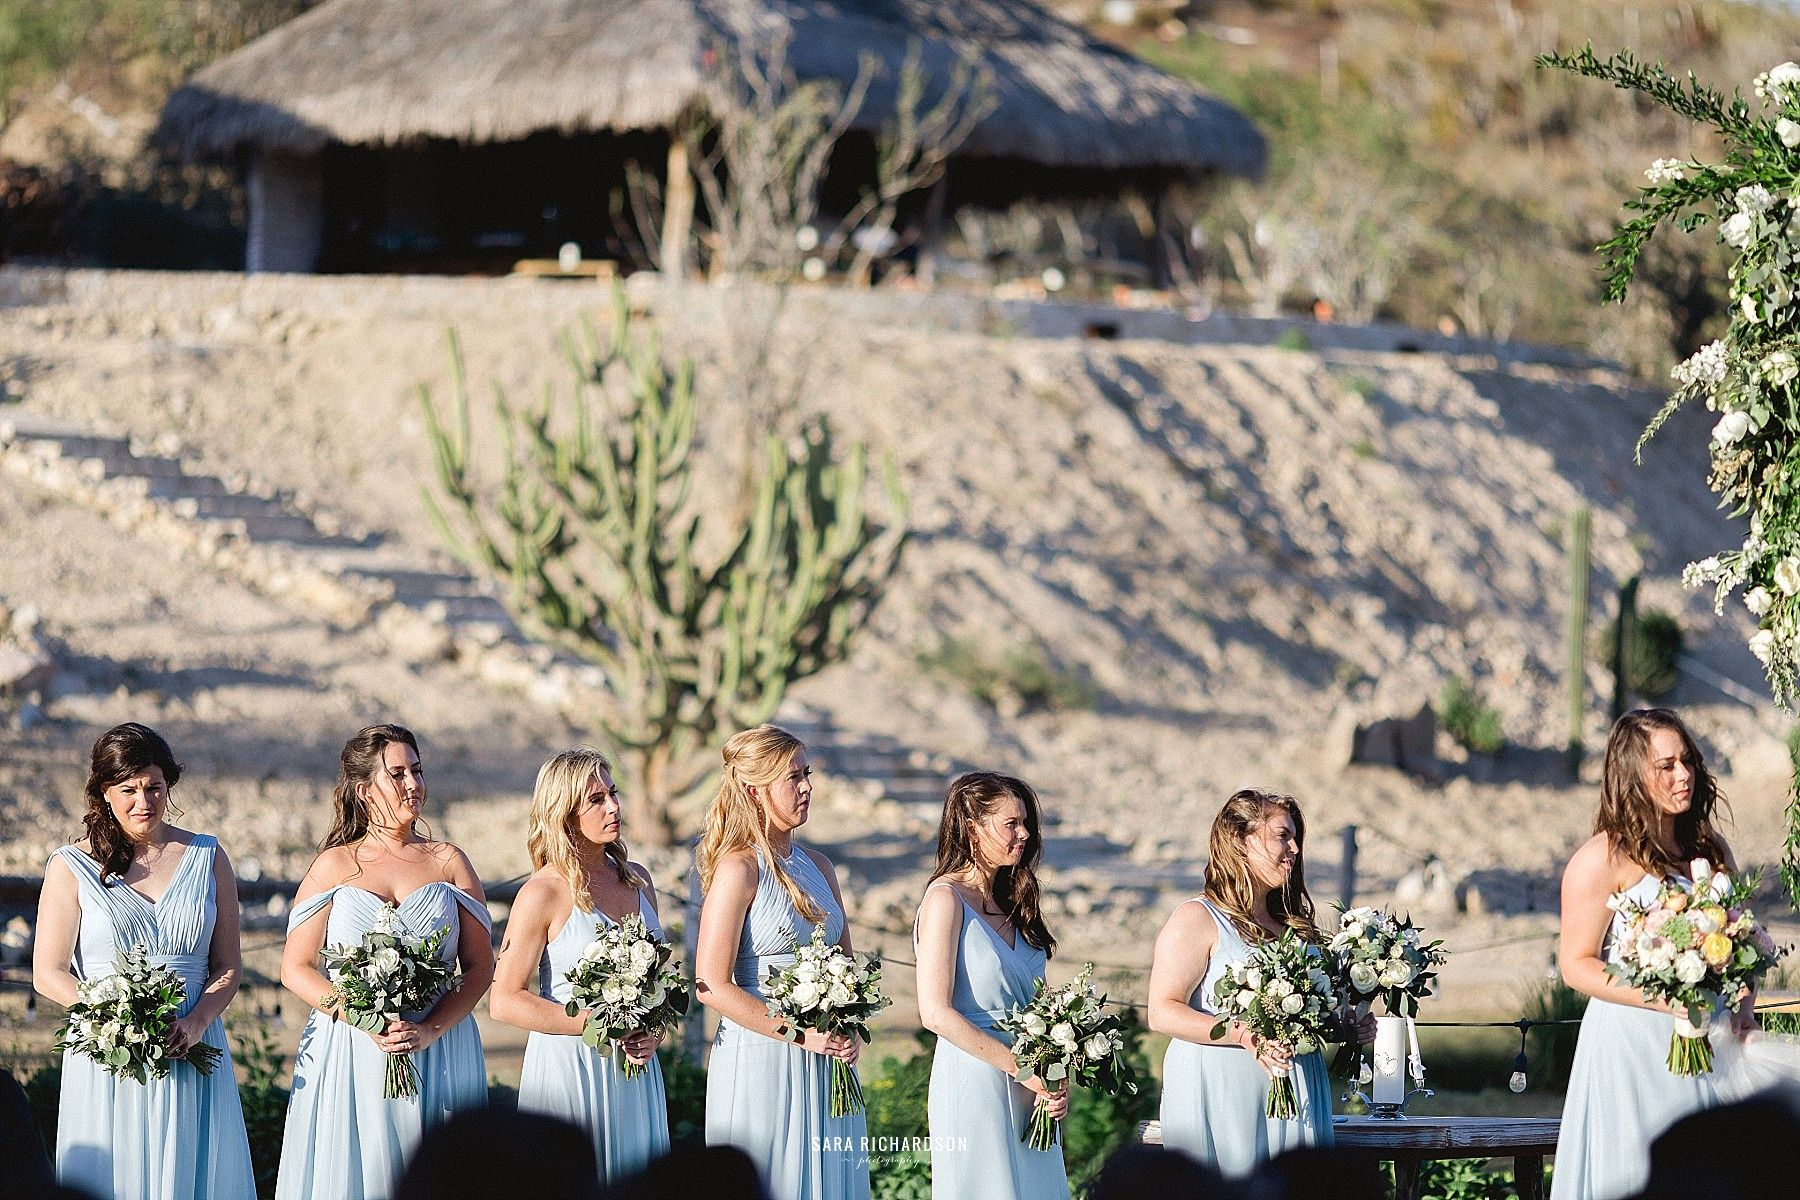 Bridesmaids standing by the Brides side as she says her I do's to the love of her life!